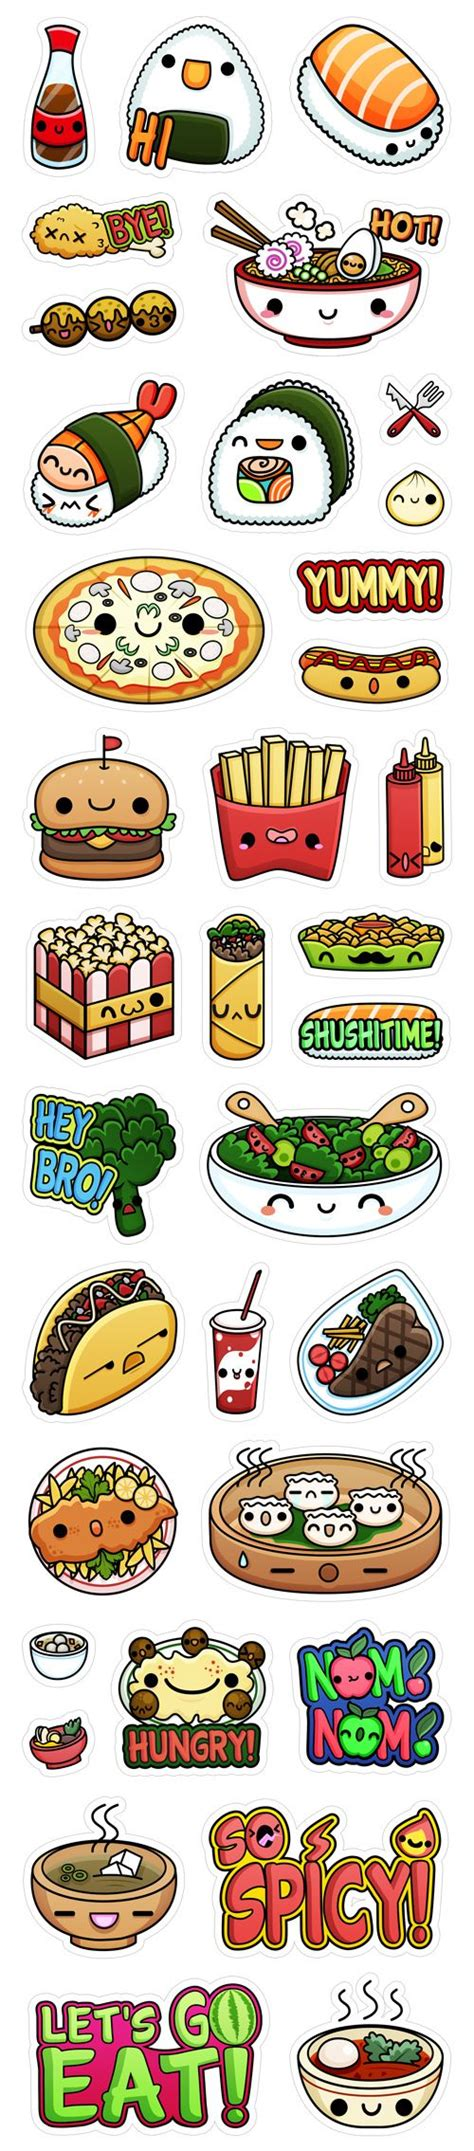 sticker doodle draw viber s kawaii food stickers by squid pig via behance